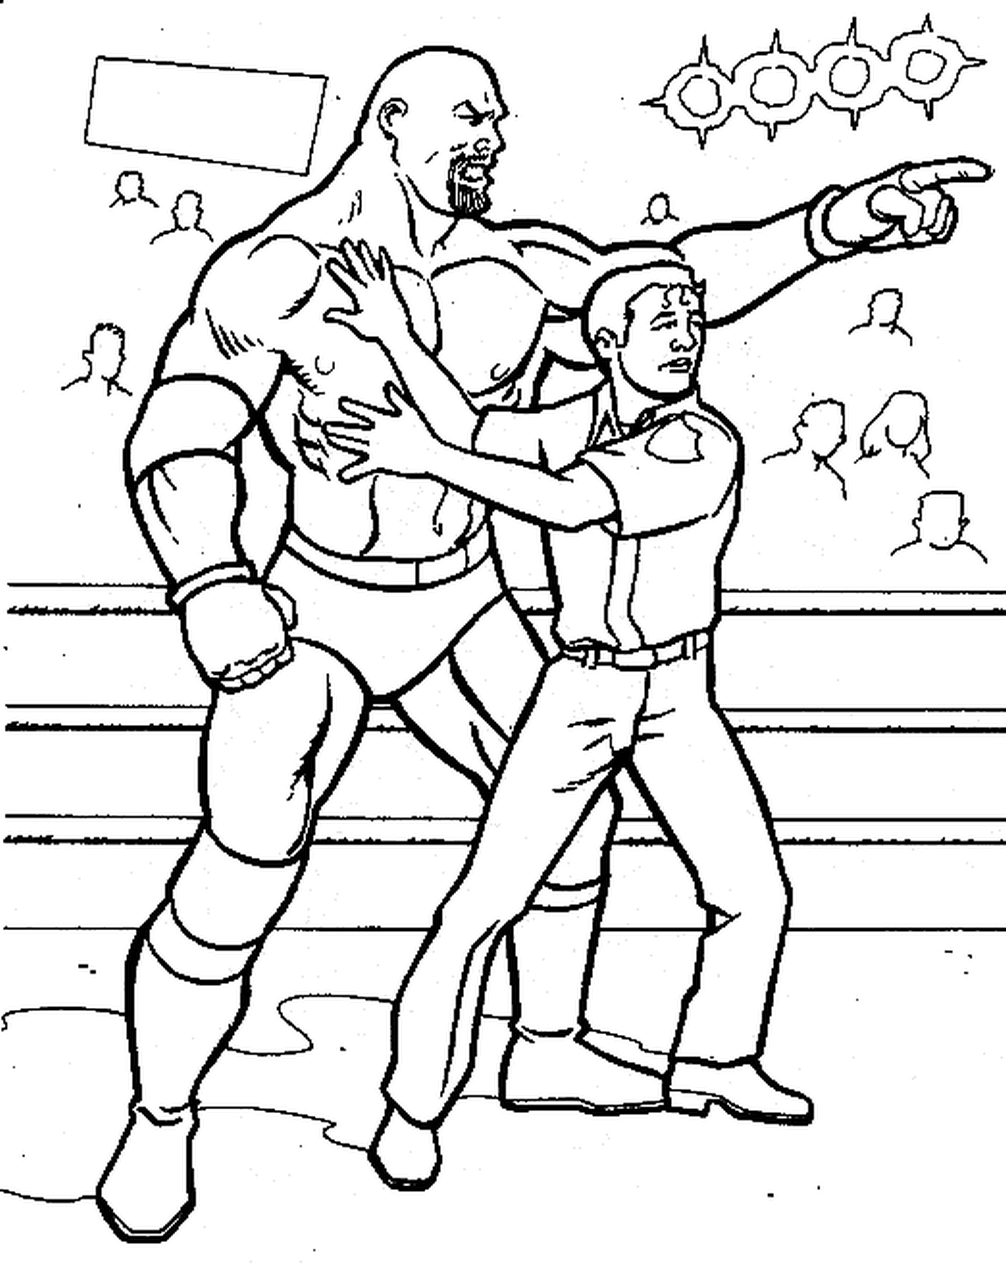 wwe colouring pictures free printable wwe coloring pages for kids pictures wwe colouring